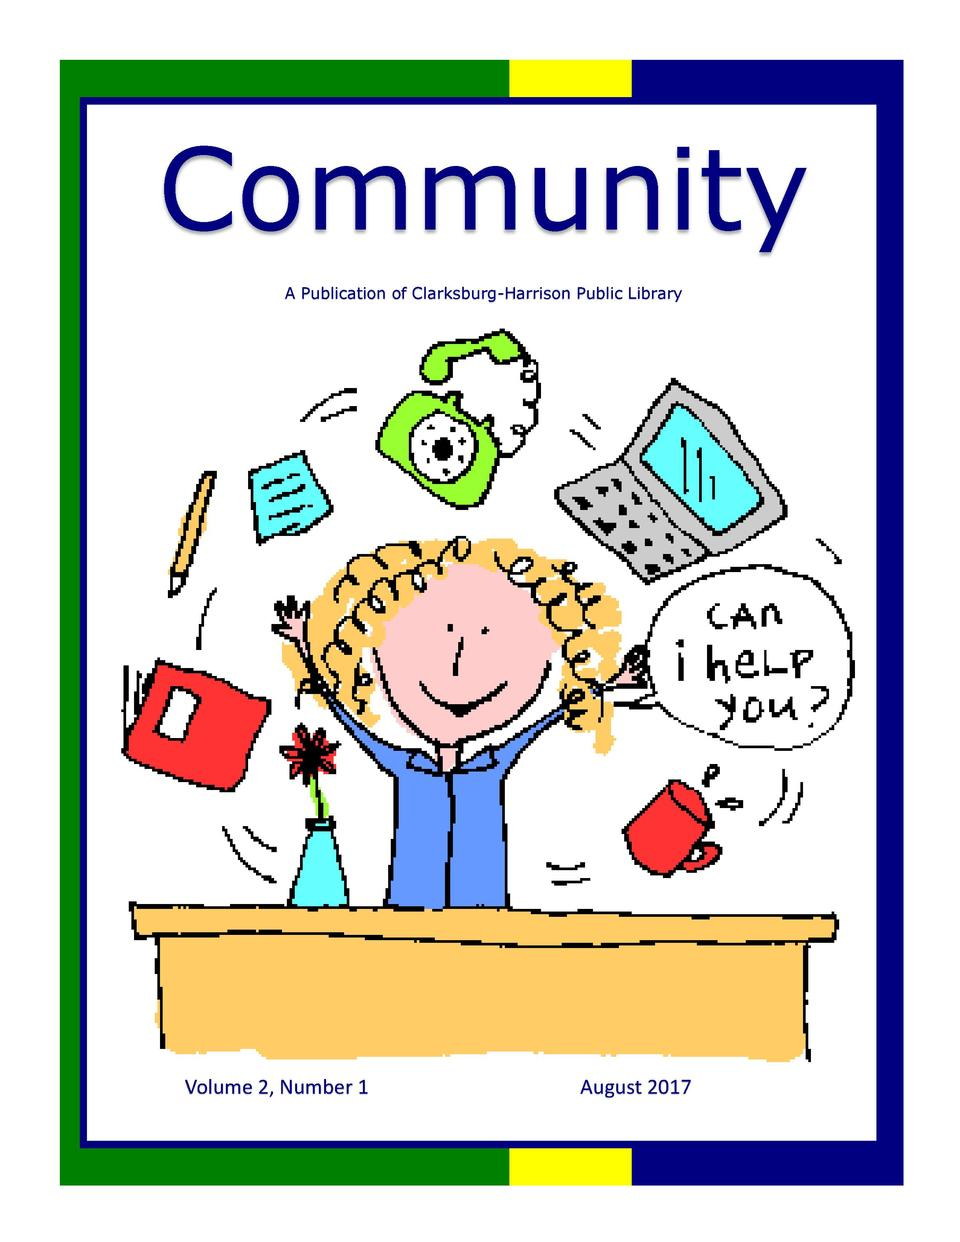 Community A Publication of Clarksburg-Harrison Public Library  Volume 2, Number 1  August 2017